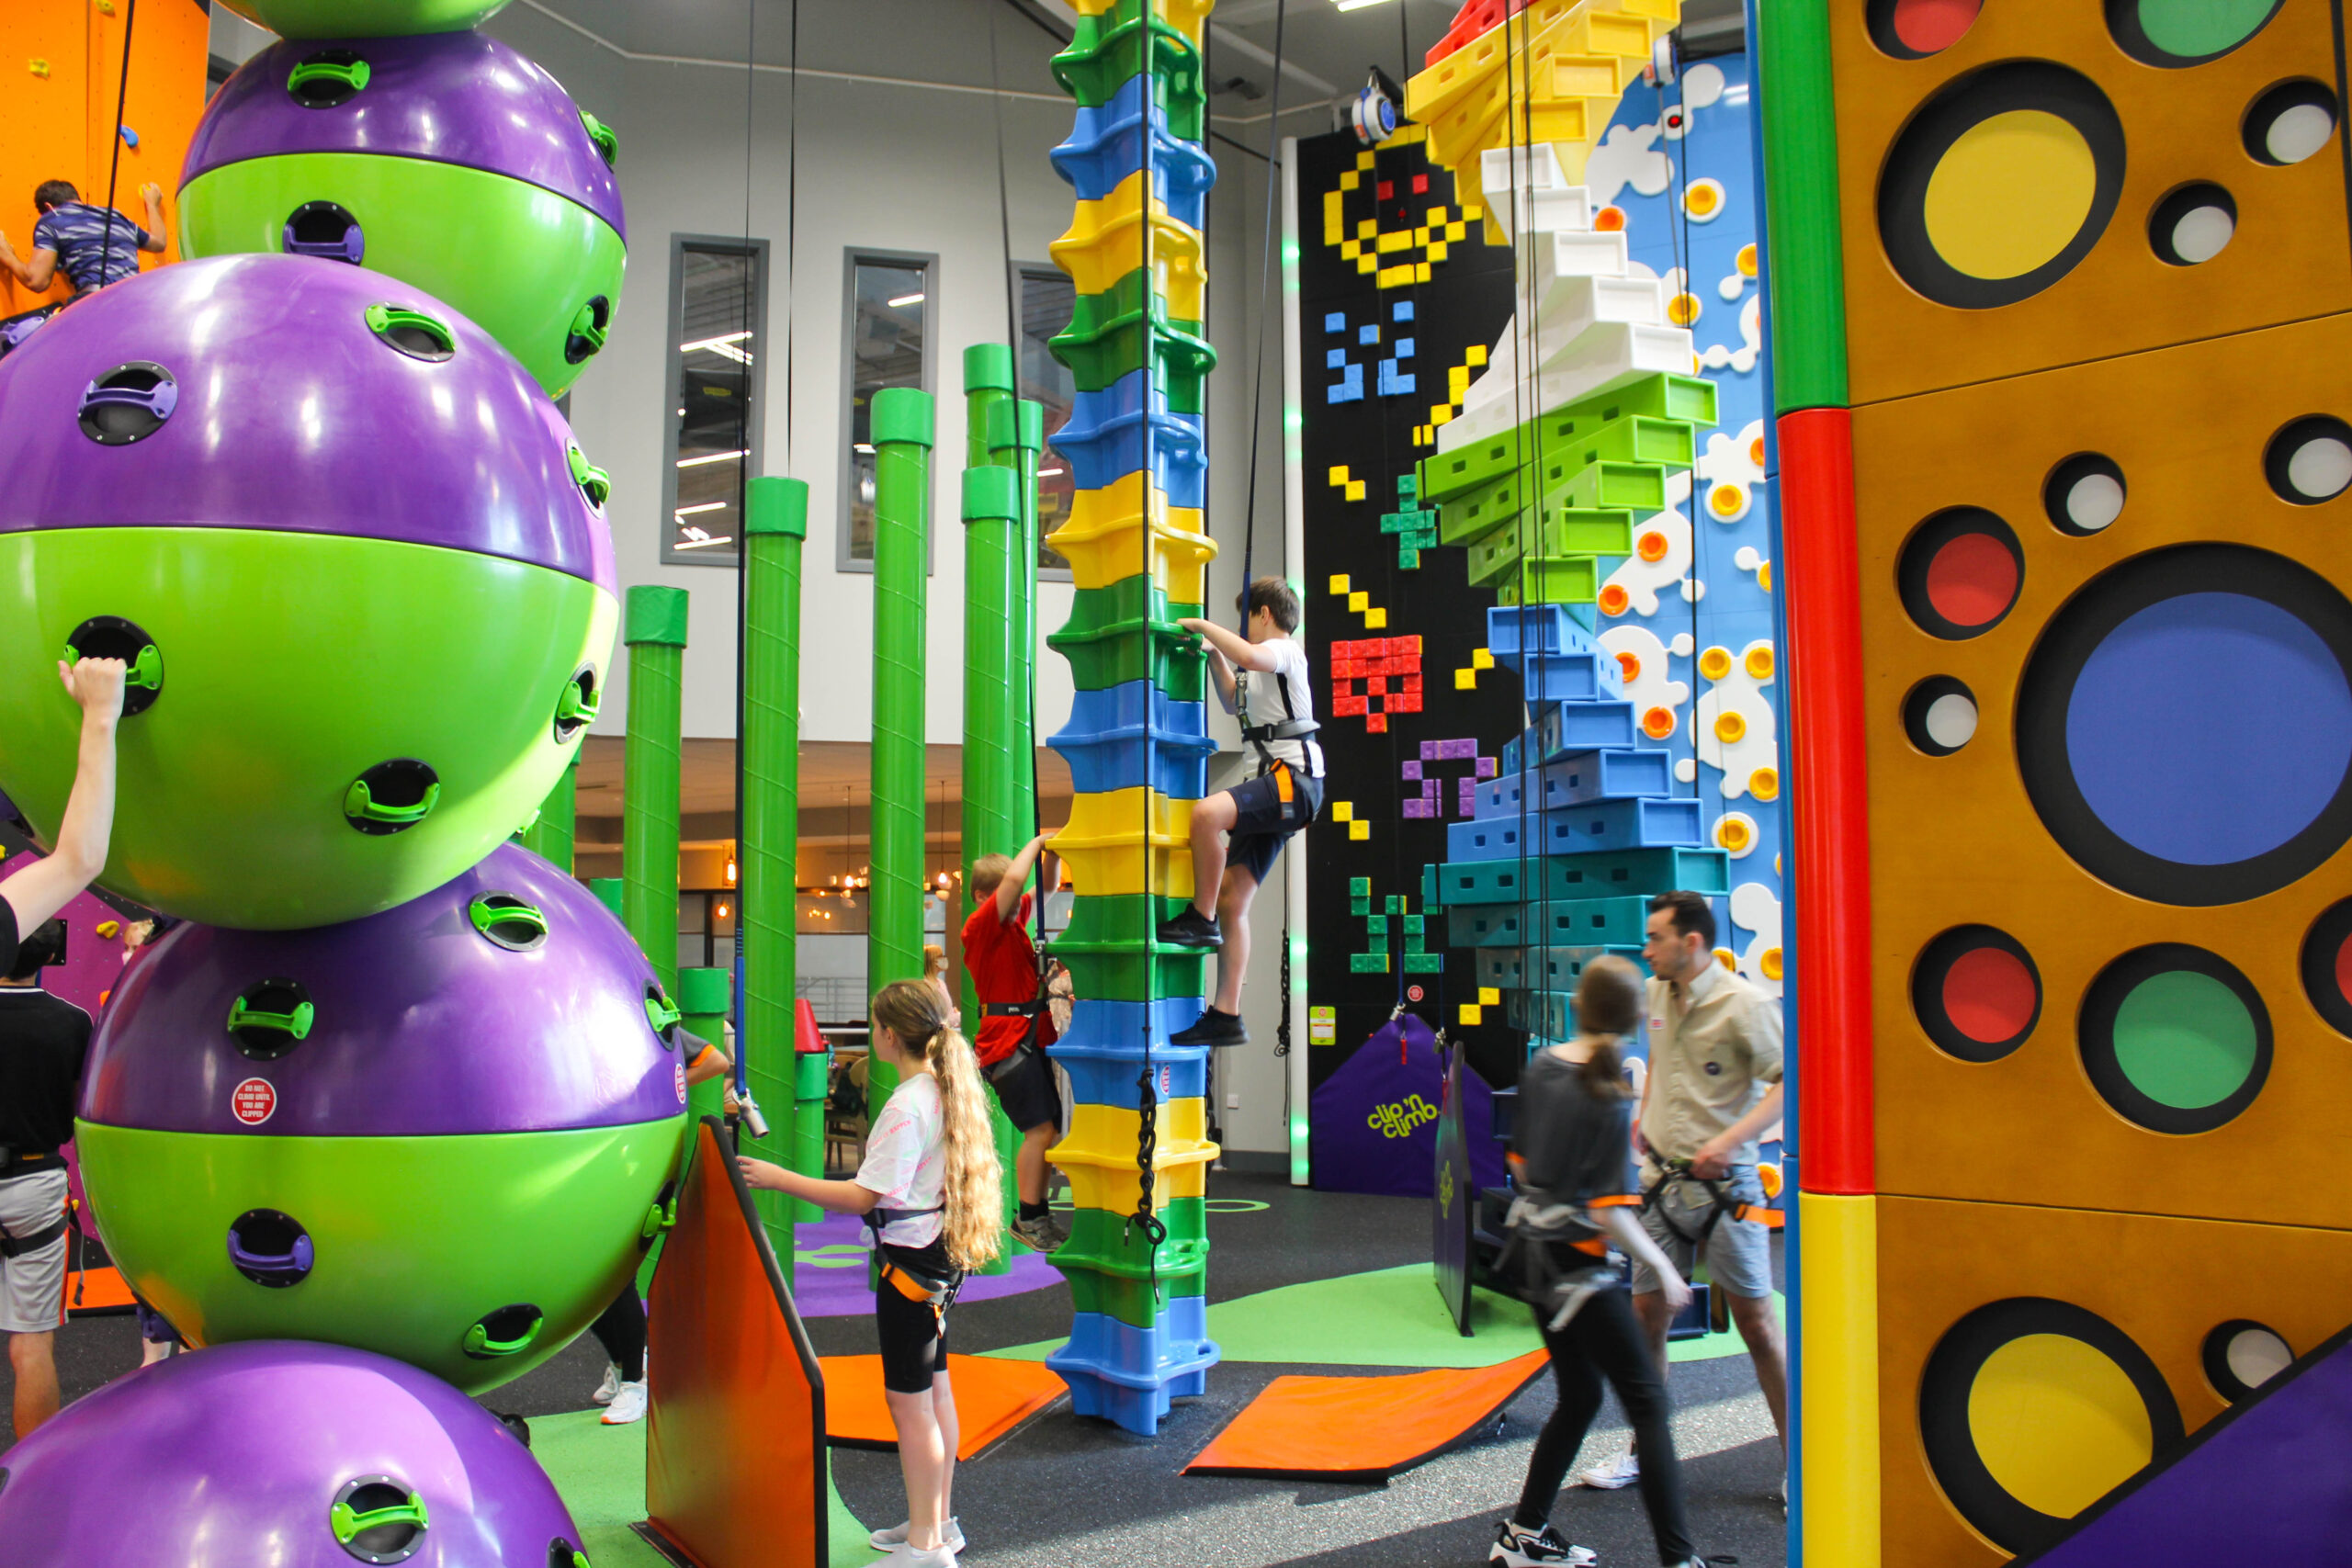 4th Frimley Scouts at Places Leisure Camberley (July 2021)